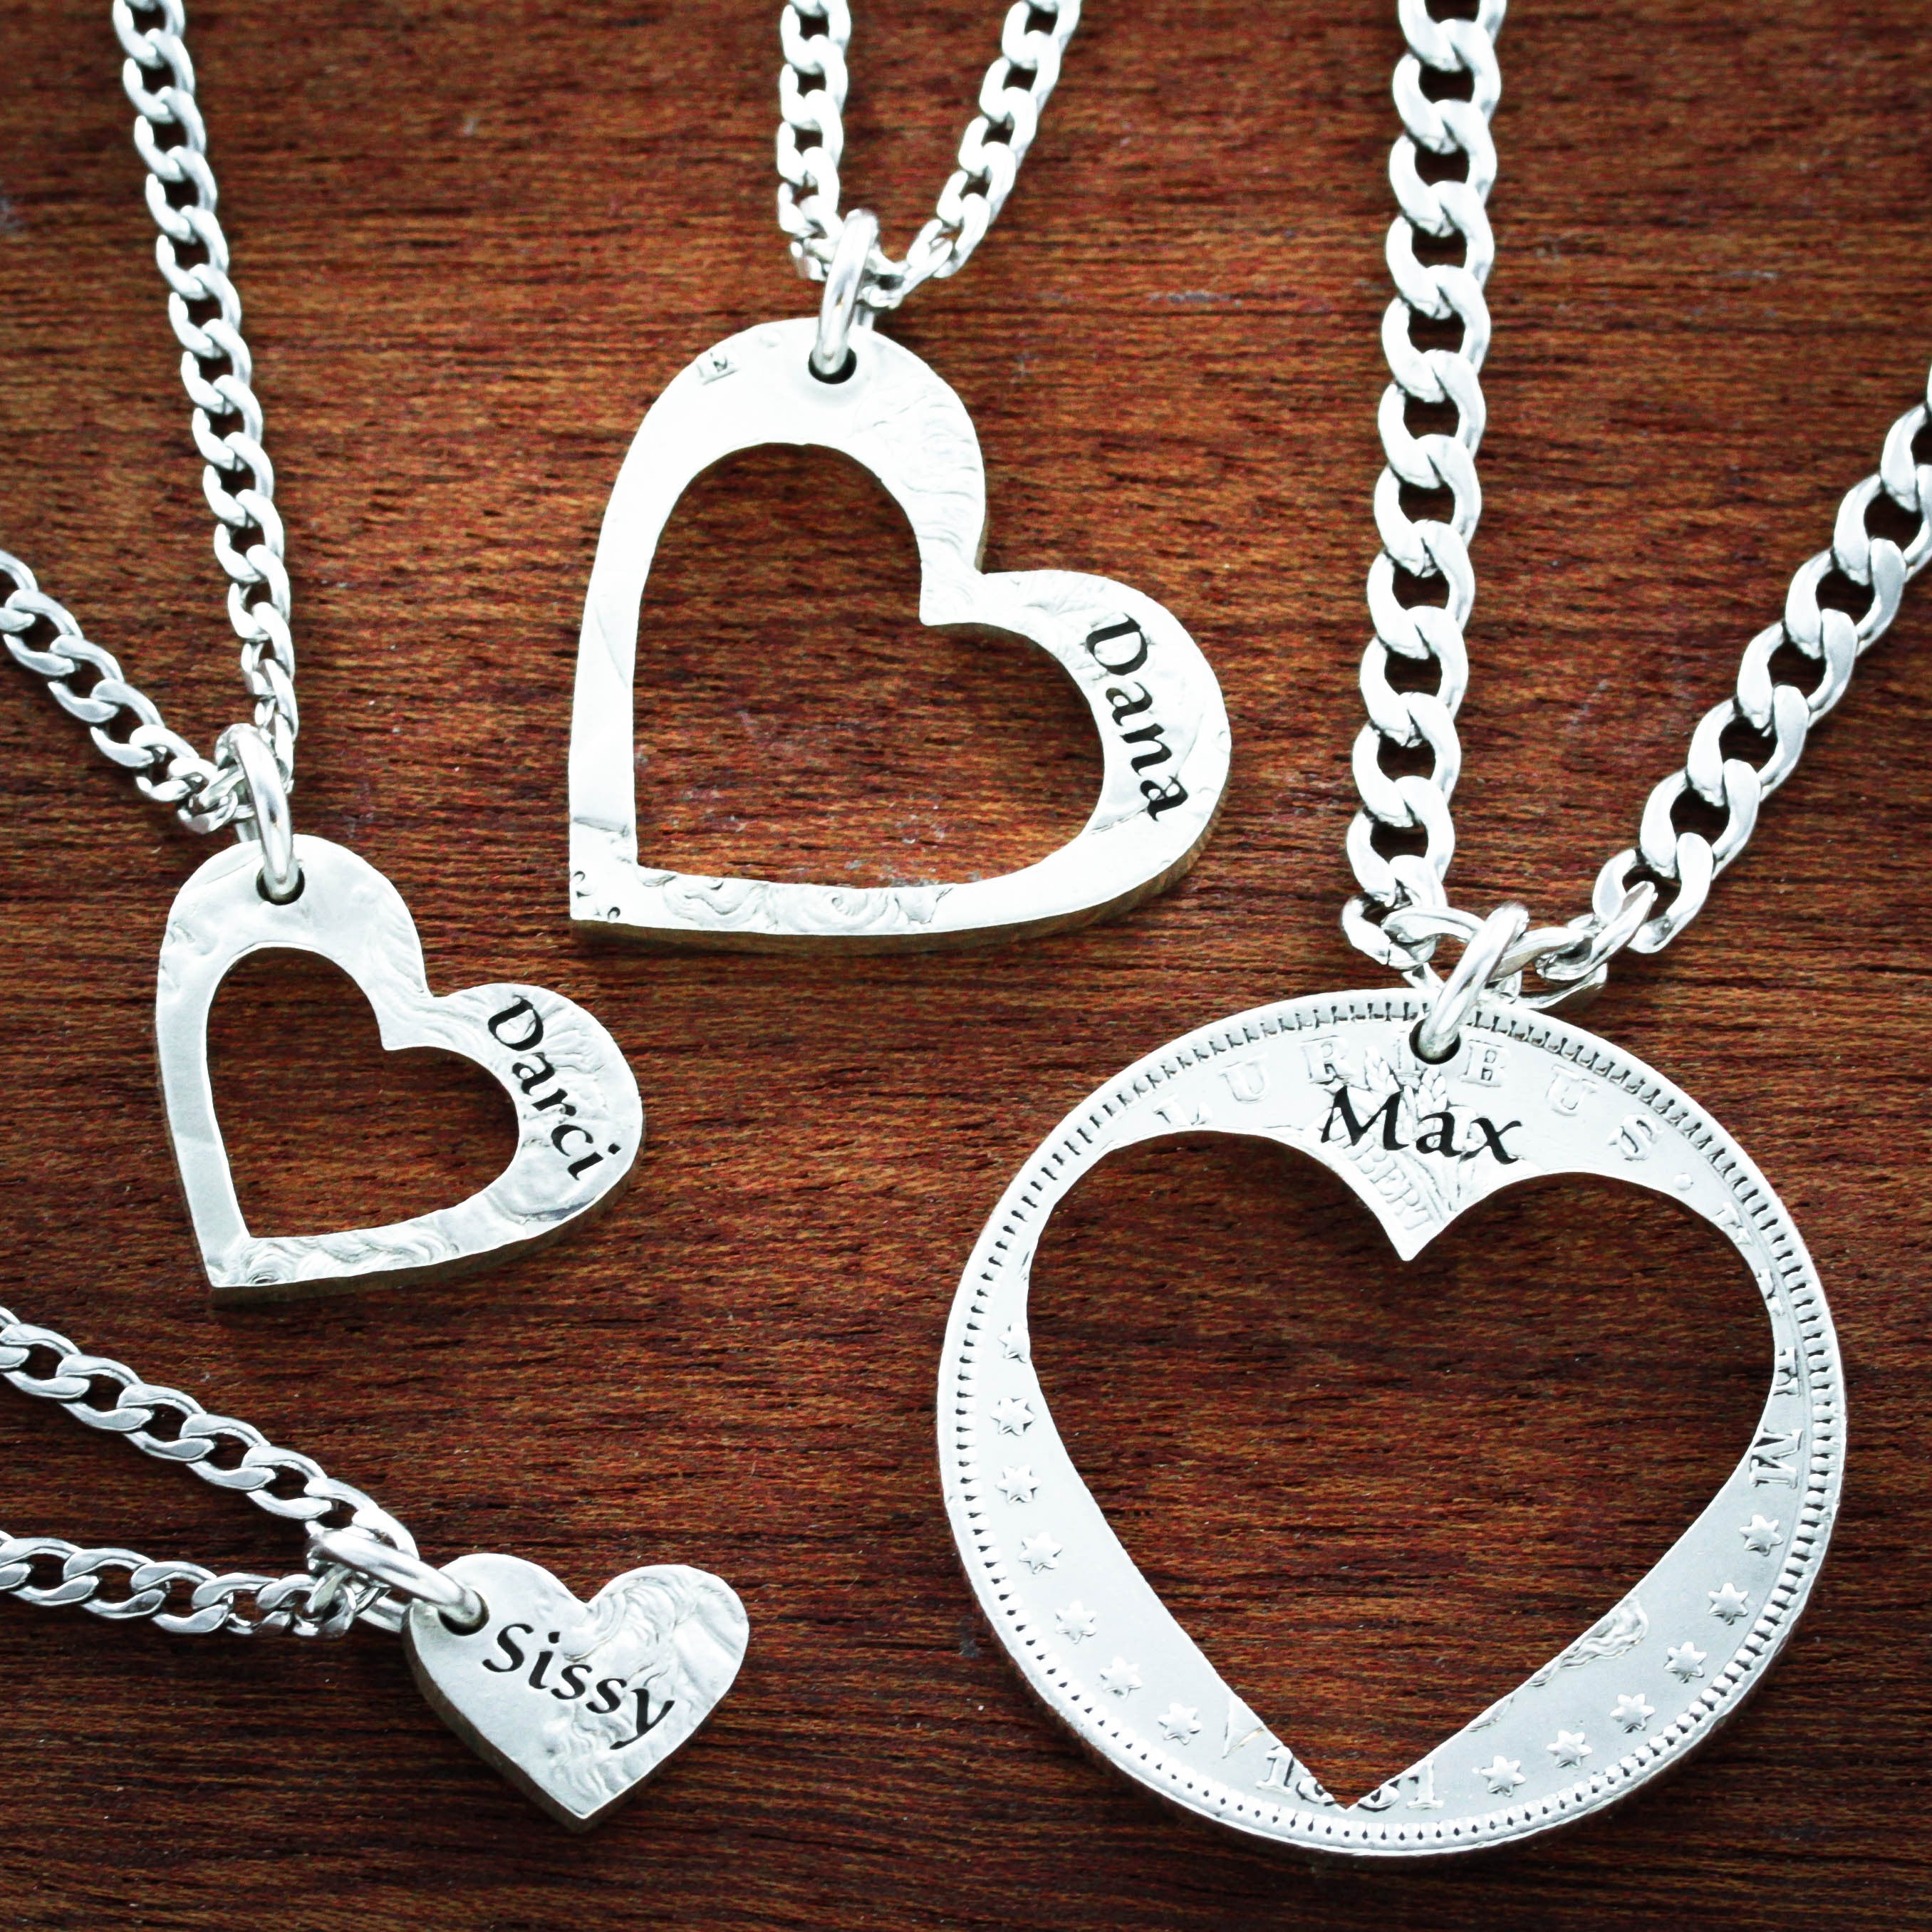 by with custom chain pendant chains com search meyers jewelry tag necklaces trisha personalized stamped custommade dog pendants